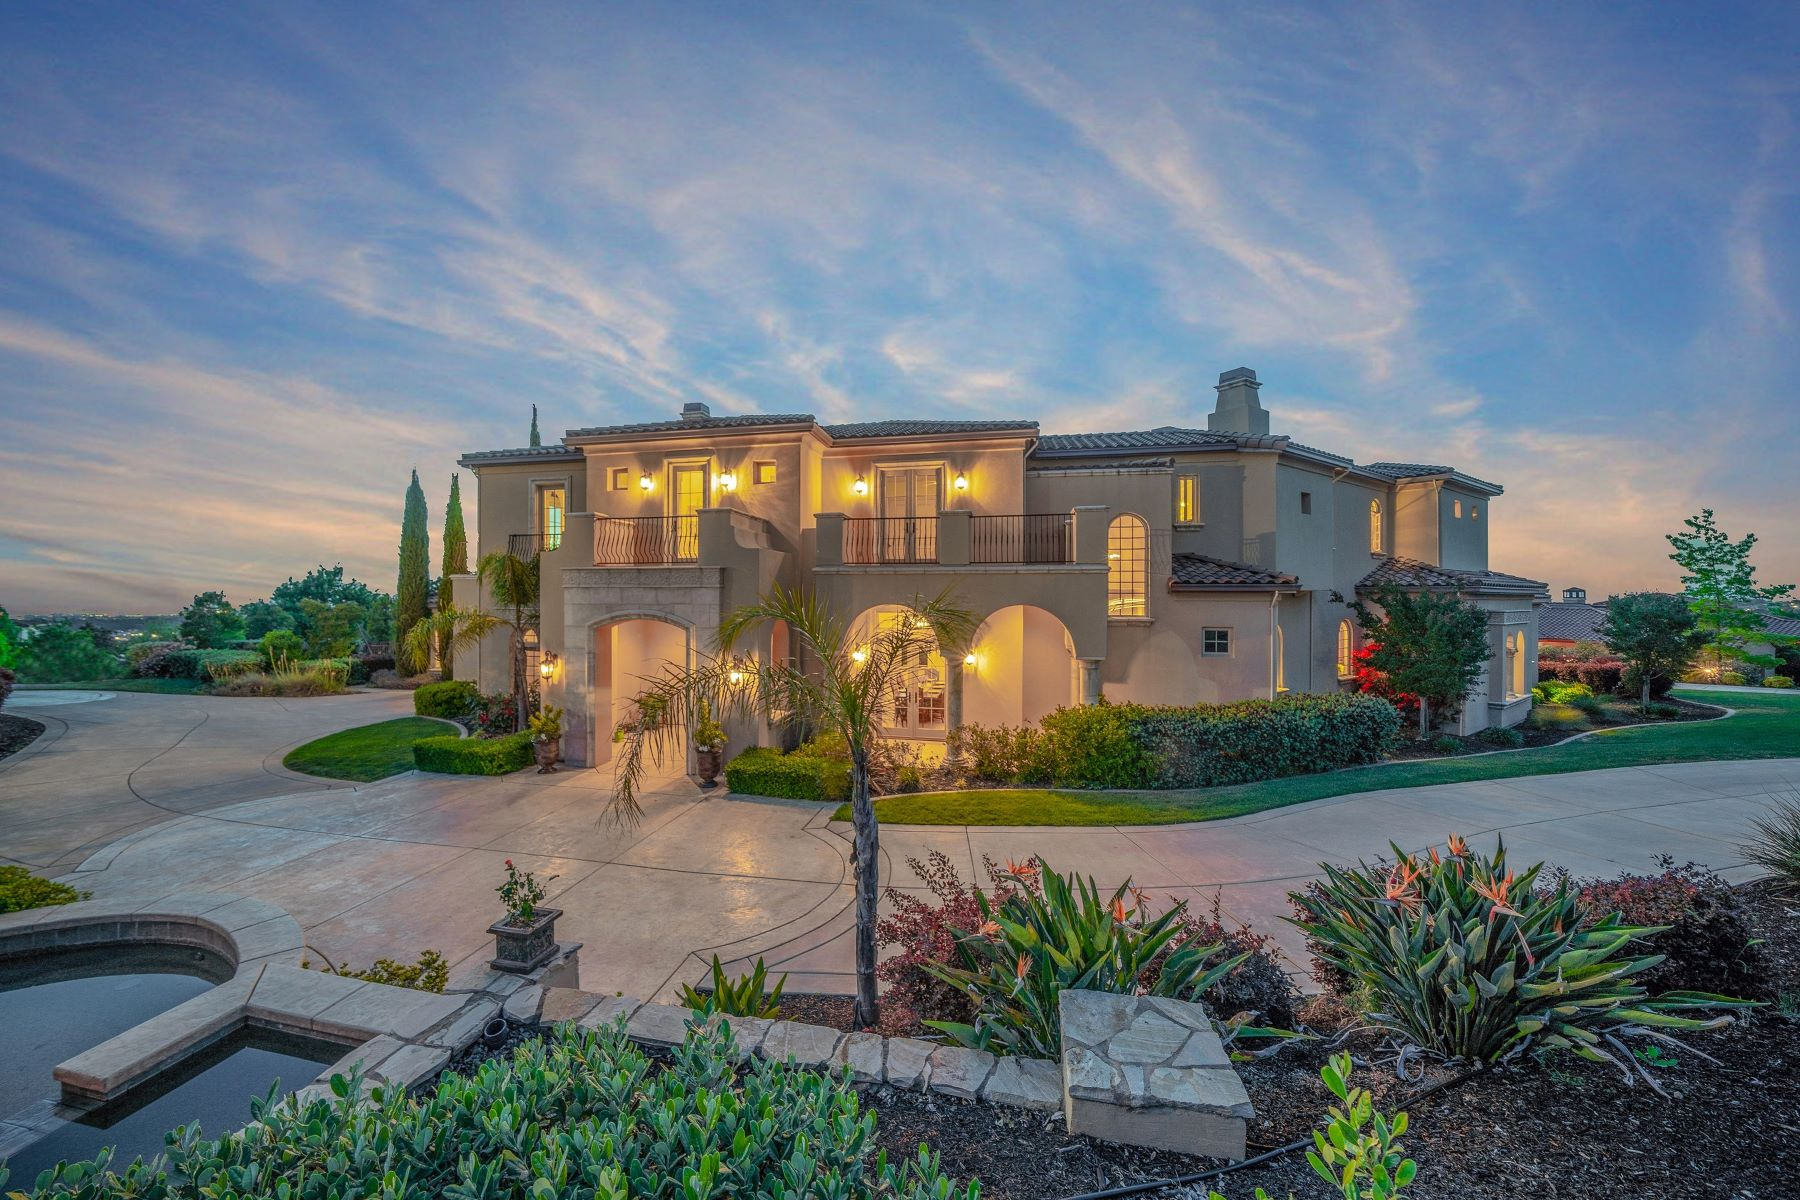 Single Family Homes for Active at Luxurious Two-Story Custom Built Home 3403 Vista De Madera Lincoln, California 95648 United States